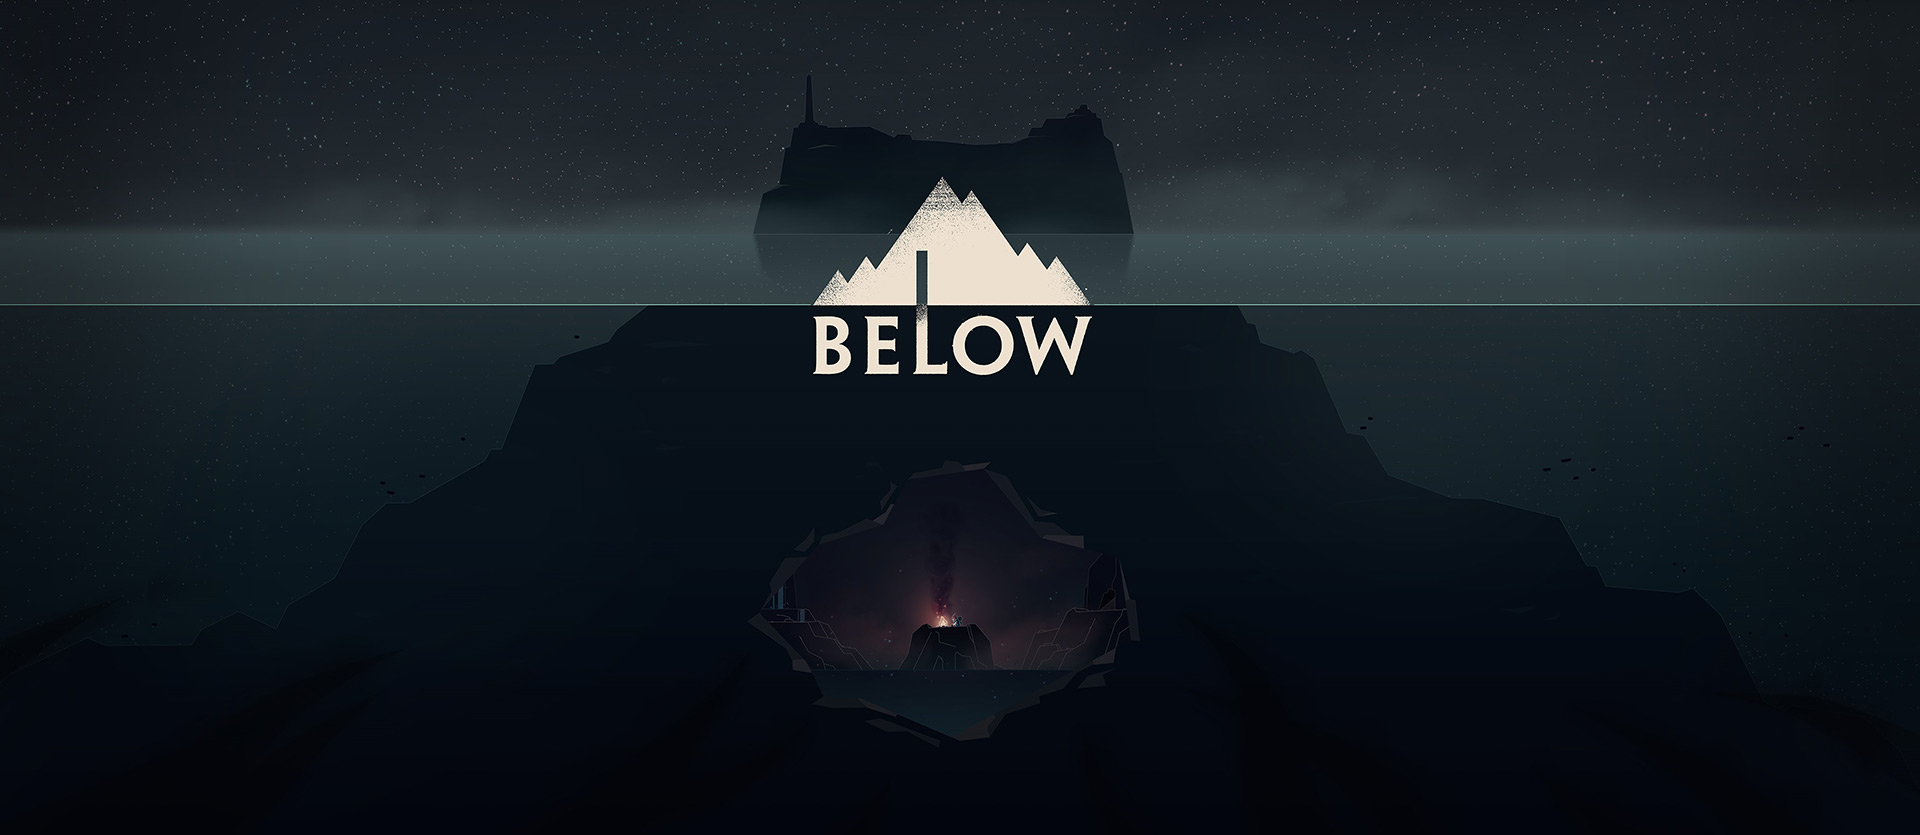 Øy og Below-logo